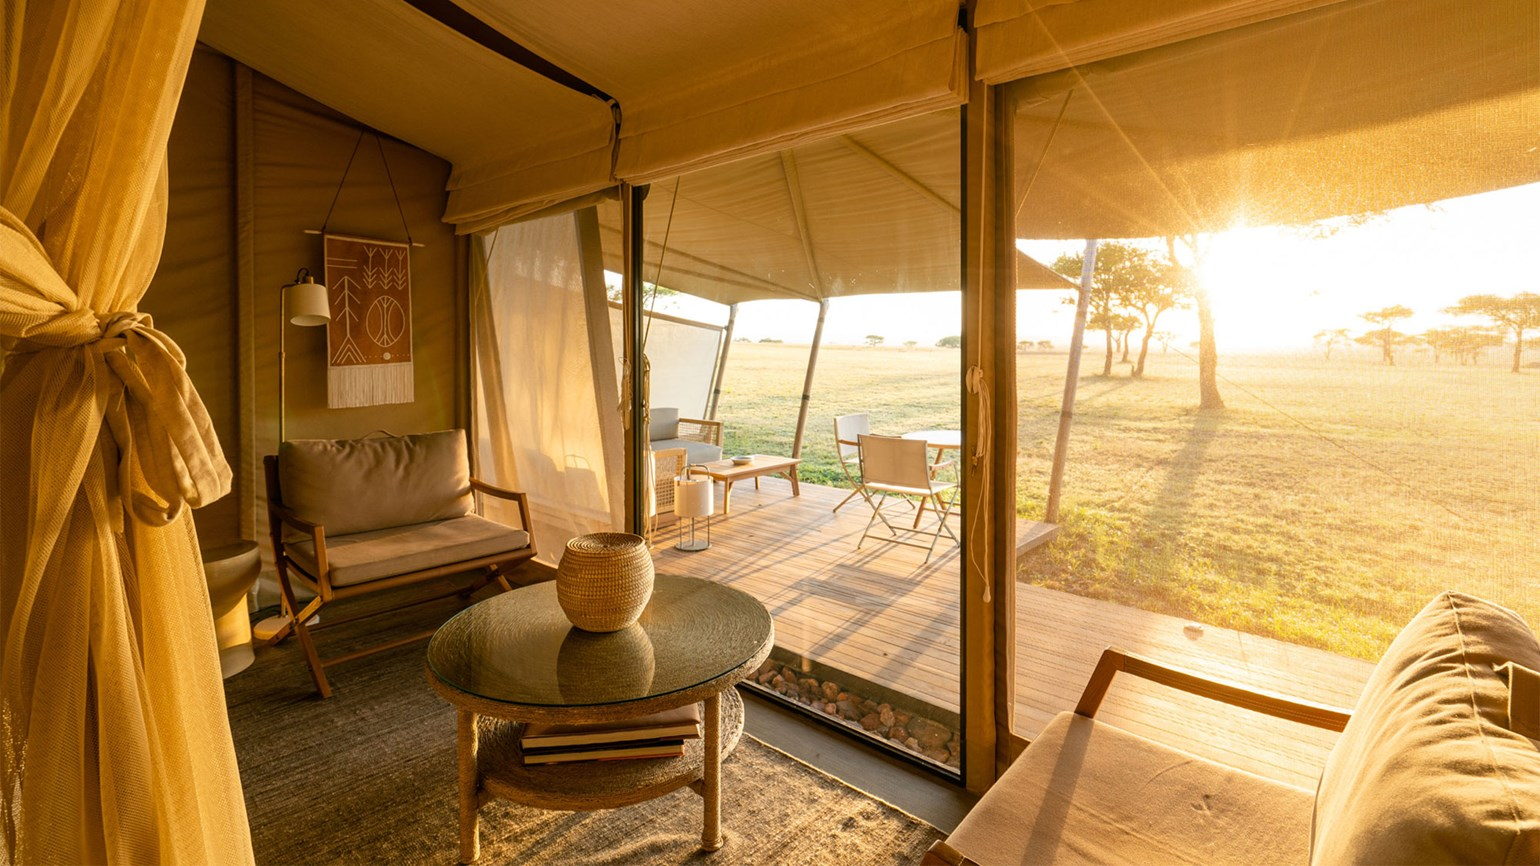 Singita reopens renovated tented camp in Tanzania